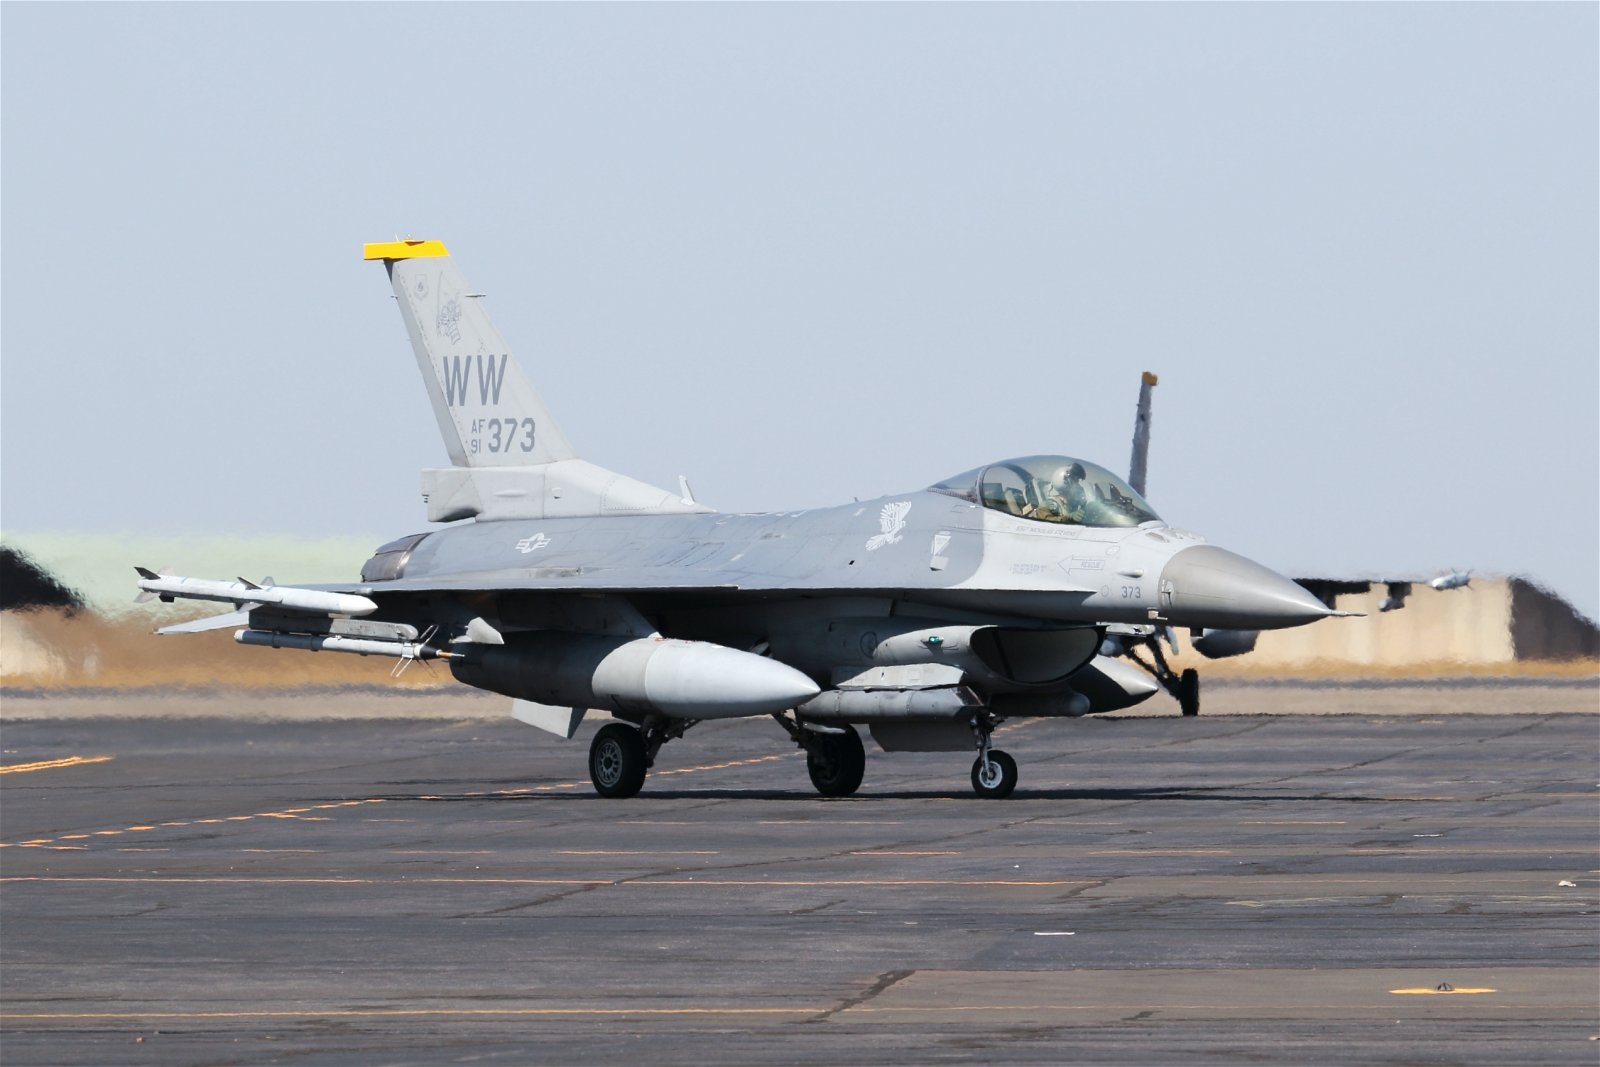 U.S. Air Force F-16 participating in Austrlia's Pitch Black Air Combat exercise. Mike Yeo Photo Used with Permission